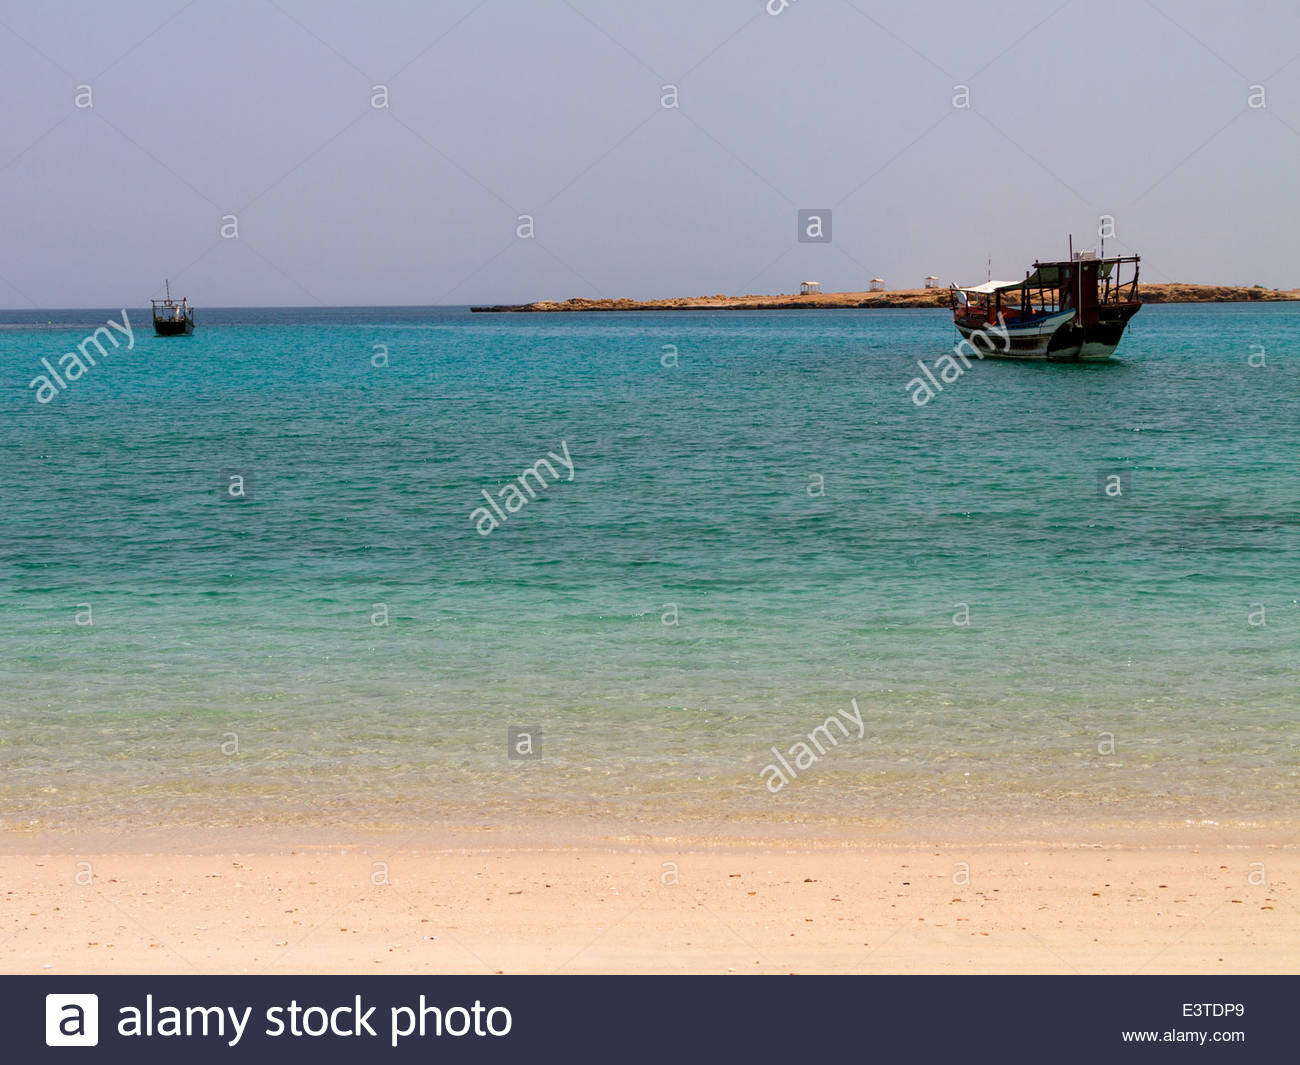 View of boats in calm sea - Oman - Stock Image